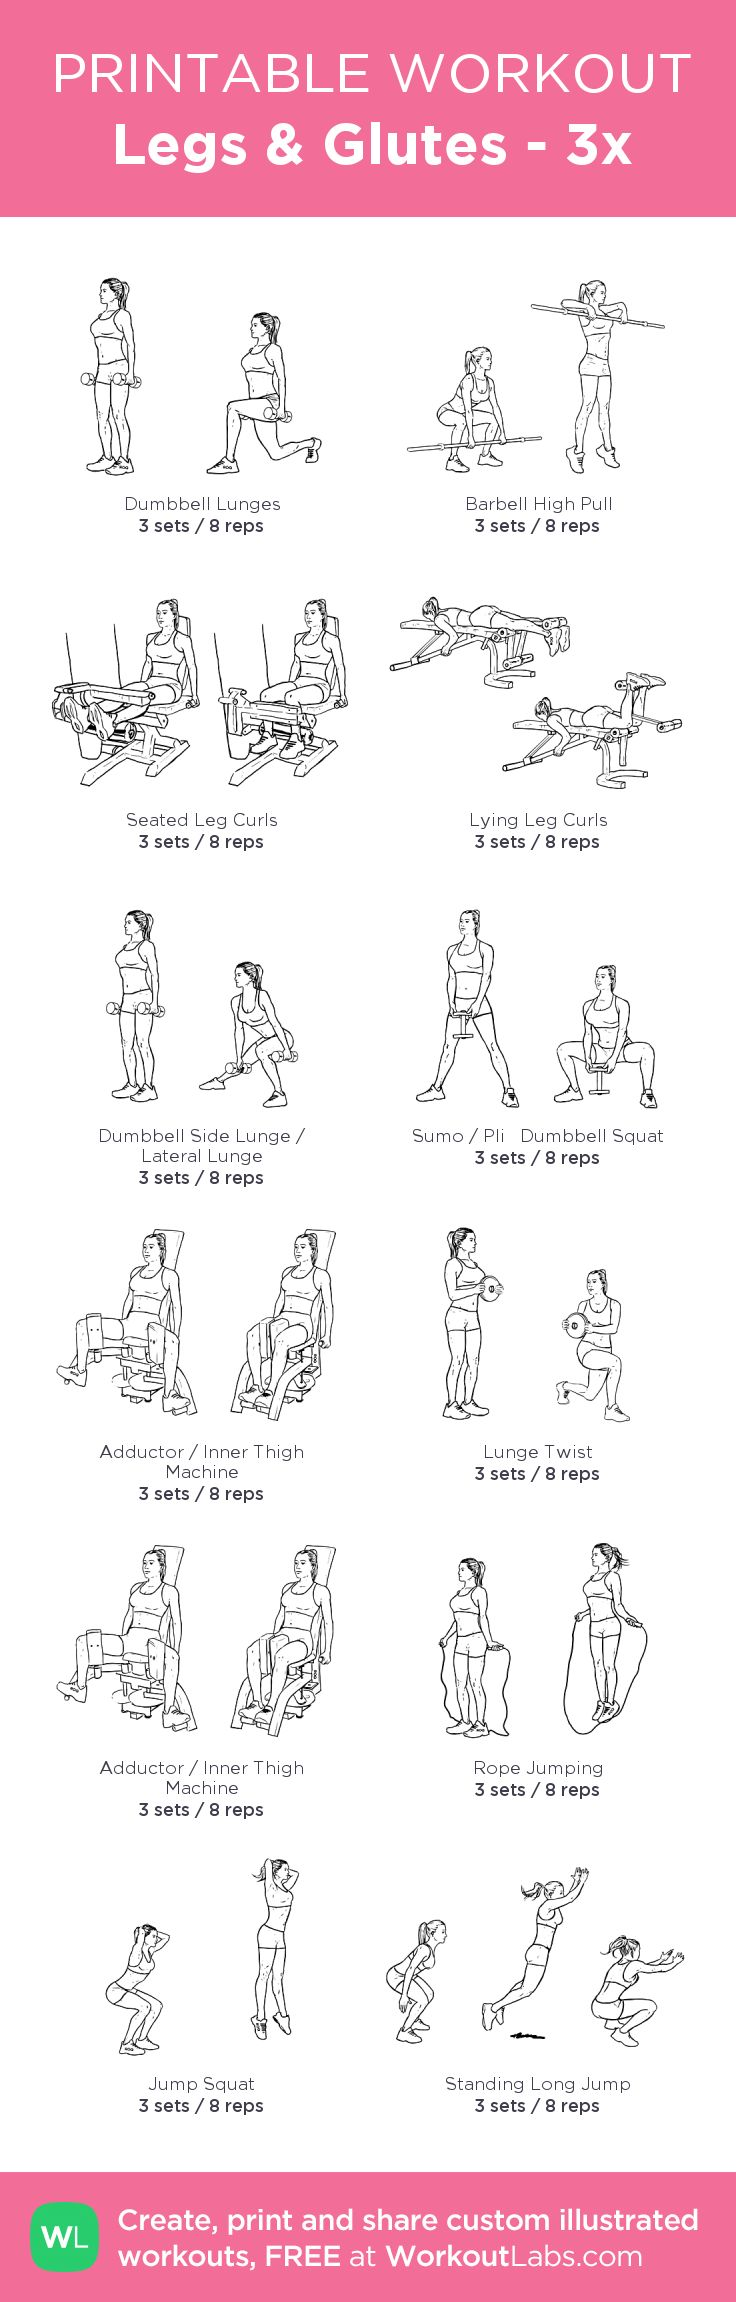 Gym & Entraînement : Legs & Glutes 3x: my visual workout created at WorkoutLabs.com Click throu